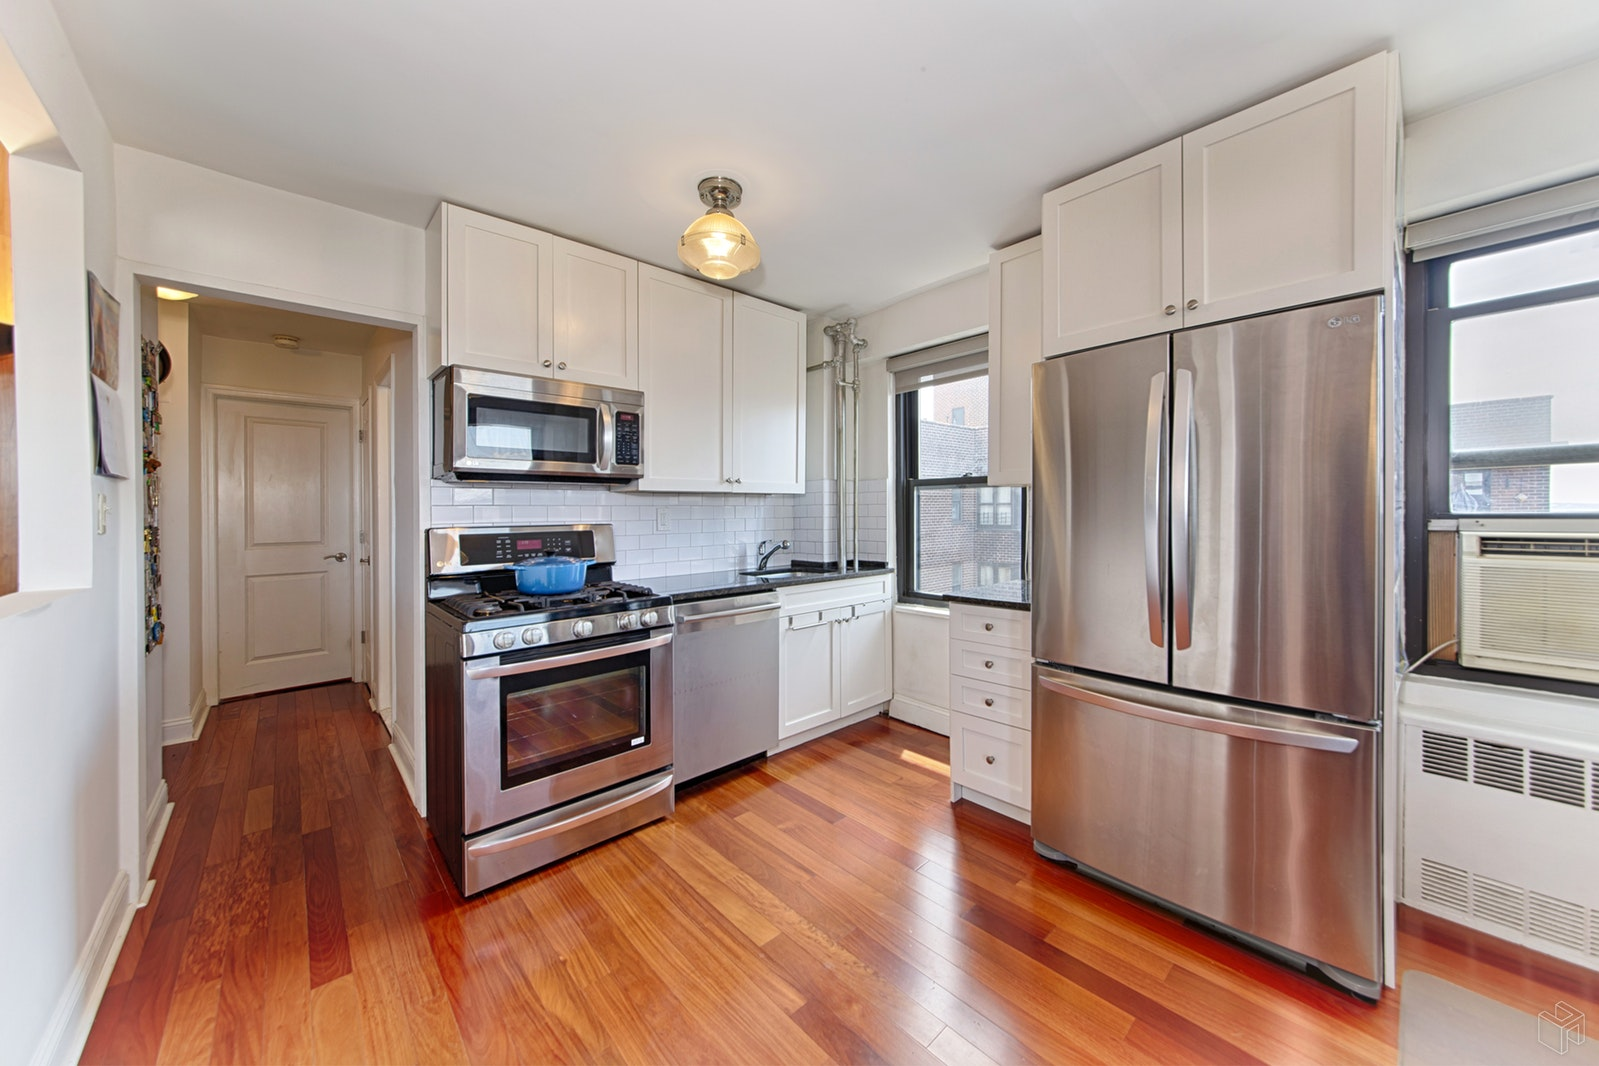 387 Grand Street, Lower East Side, NYC, 10002, $995,000, Sold Property, Halstead Real Estate, Photo 4